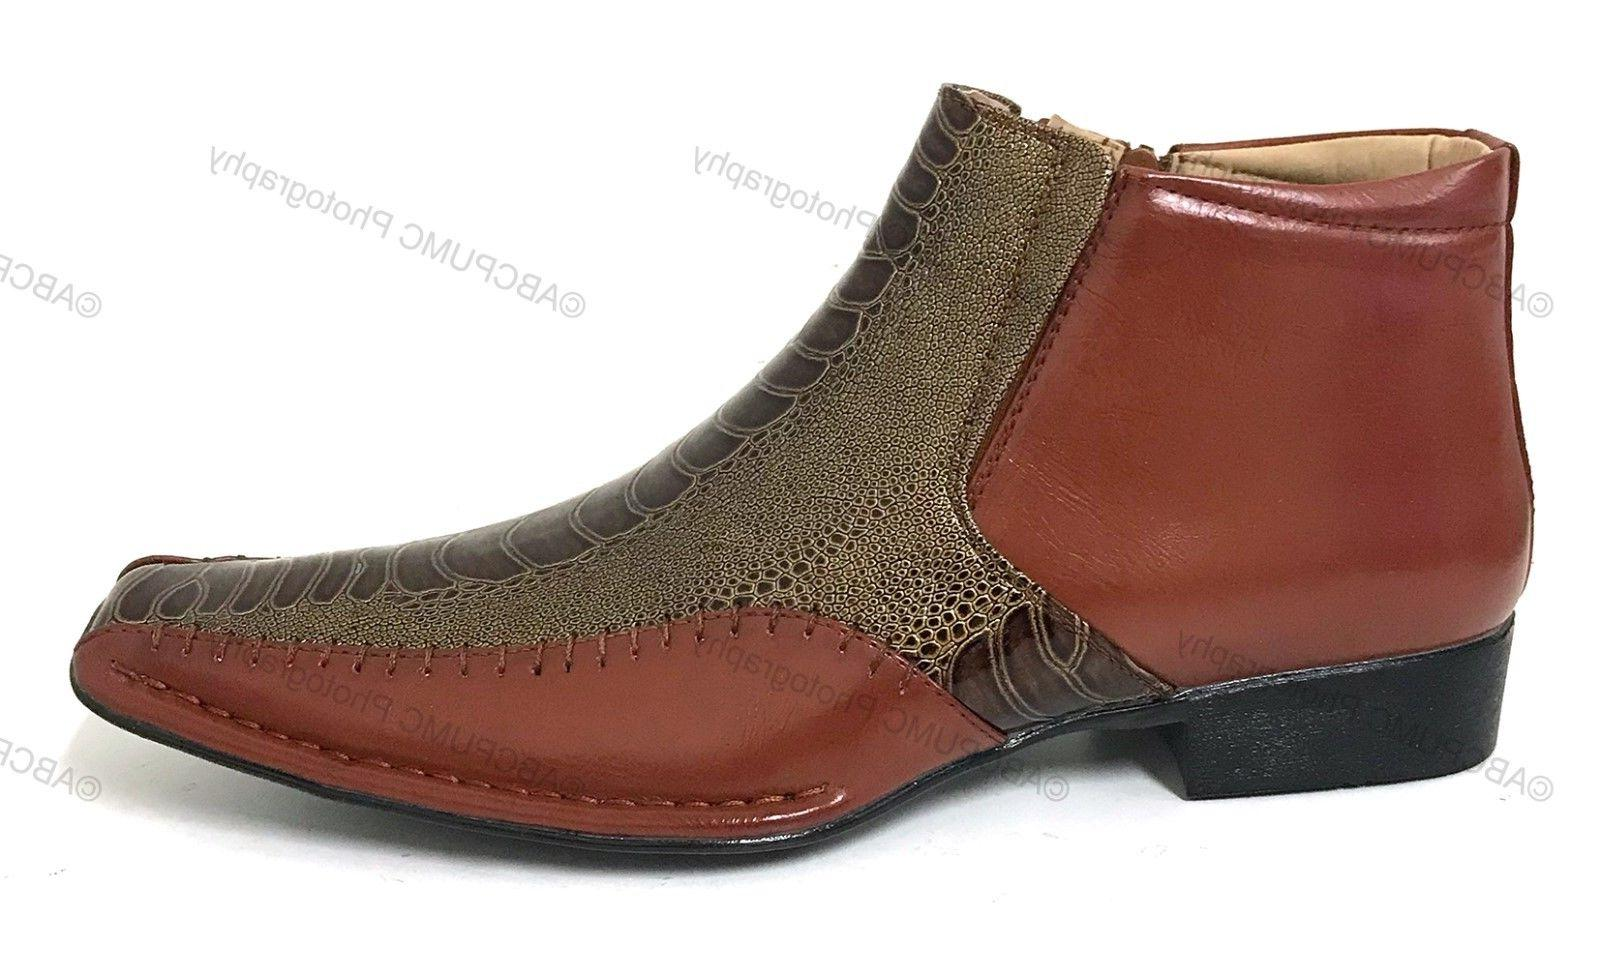 New Boots Crocodile Lined Ankle